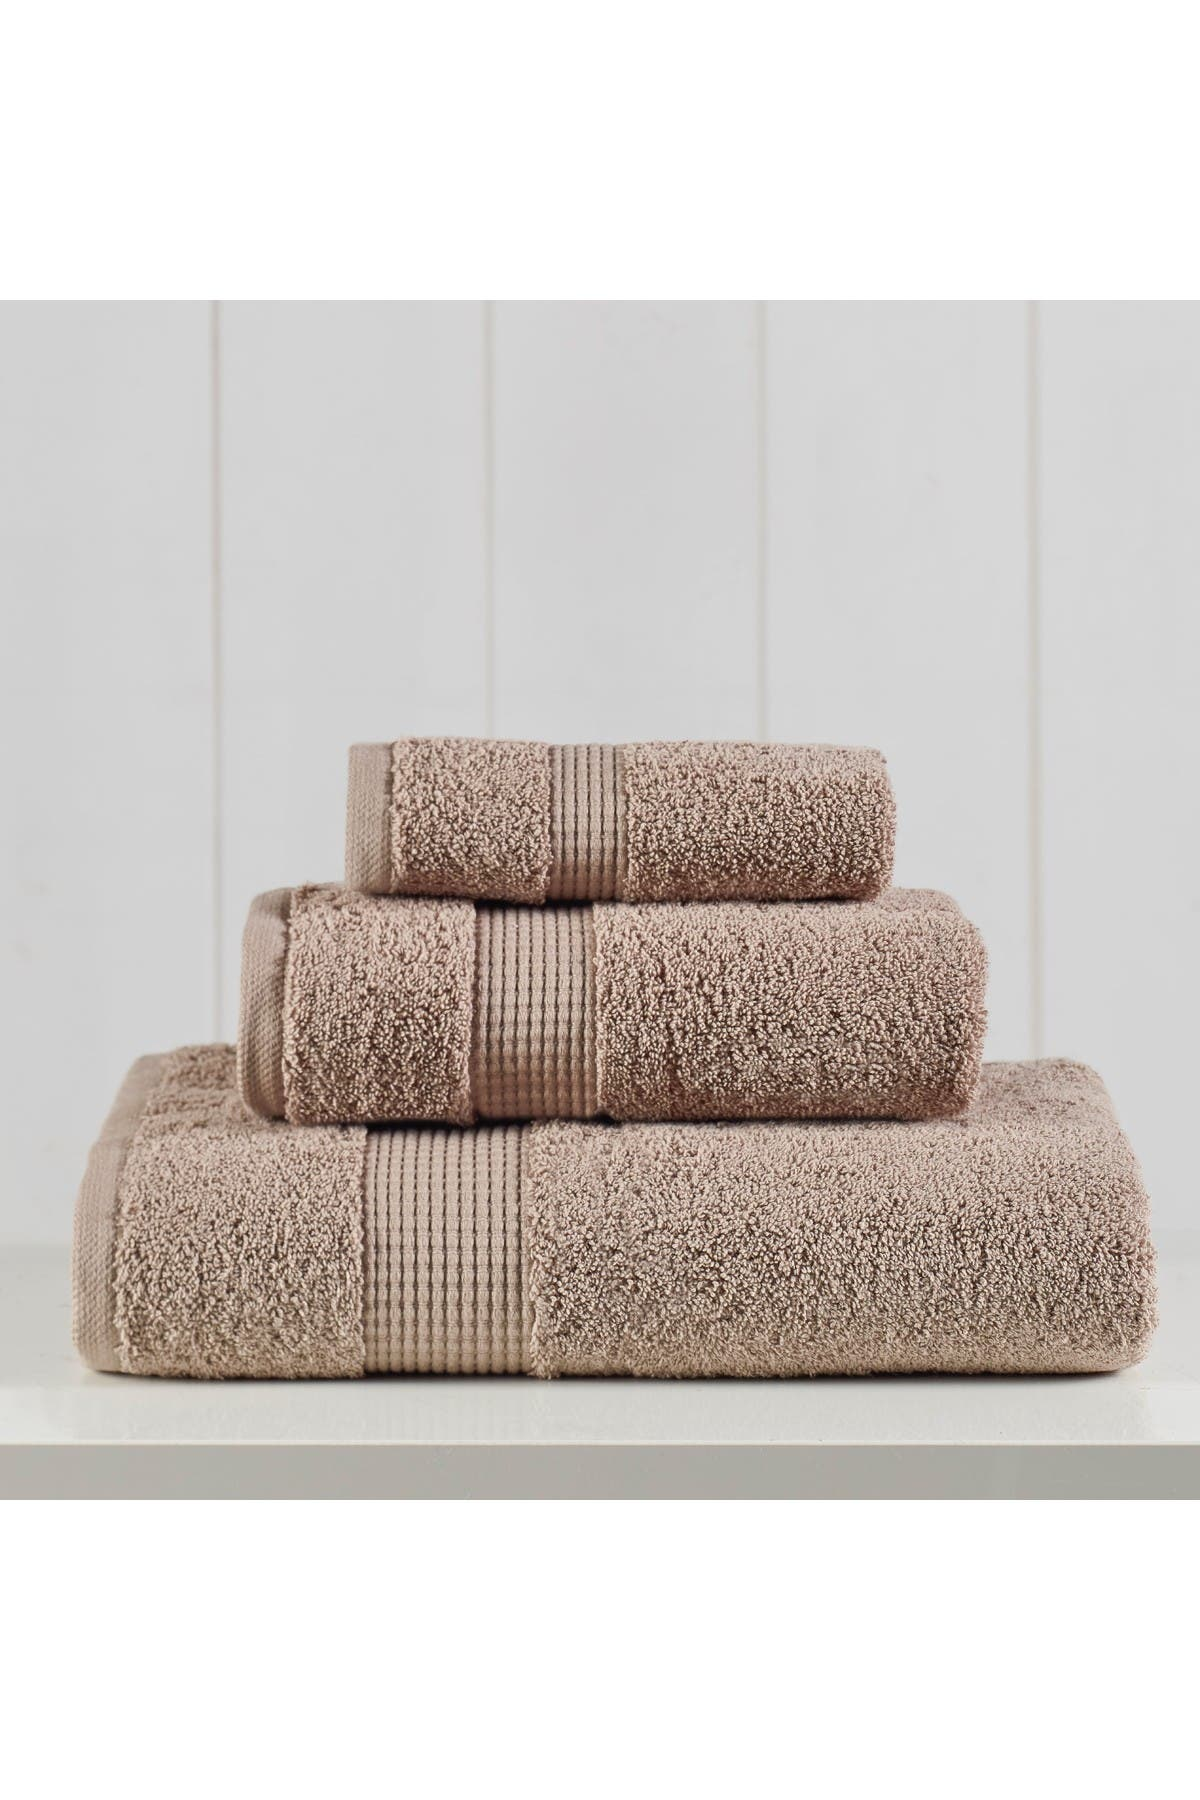 Image of Modern Threads Manor Ridge Turkish Cotton 3-Piece Towel Set - Taupe